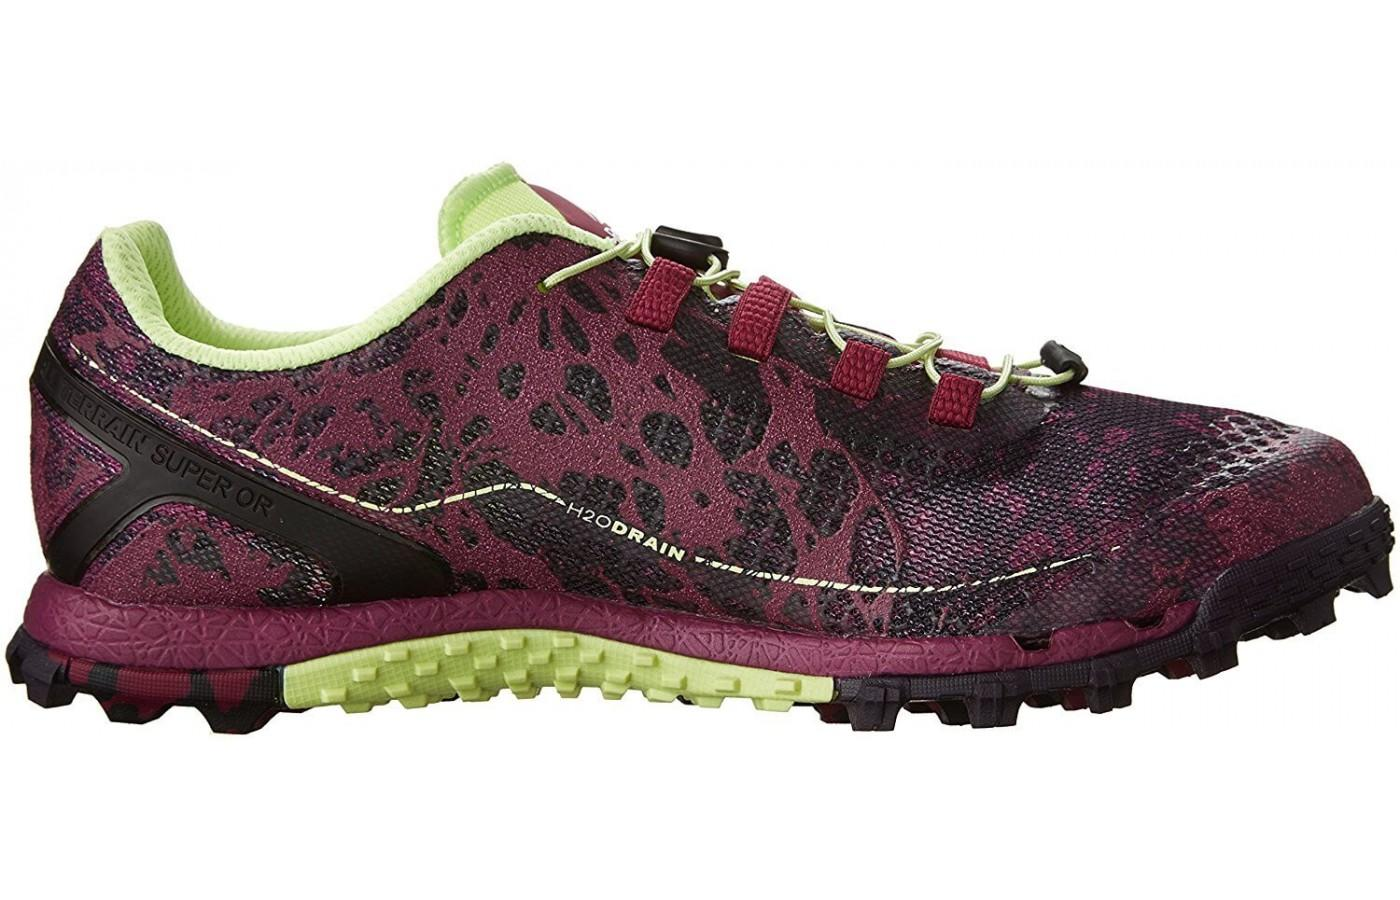 Here is the profile of the Reebok All Terrain Super